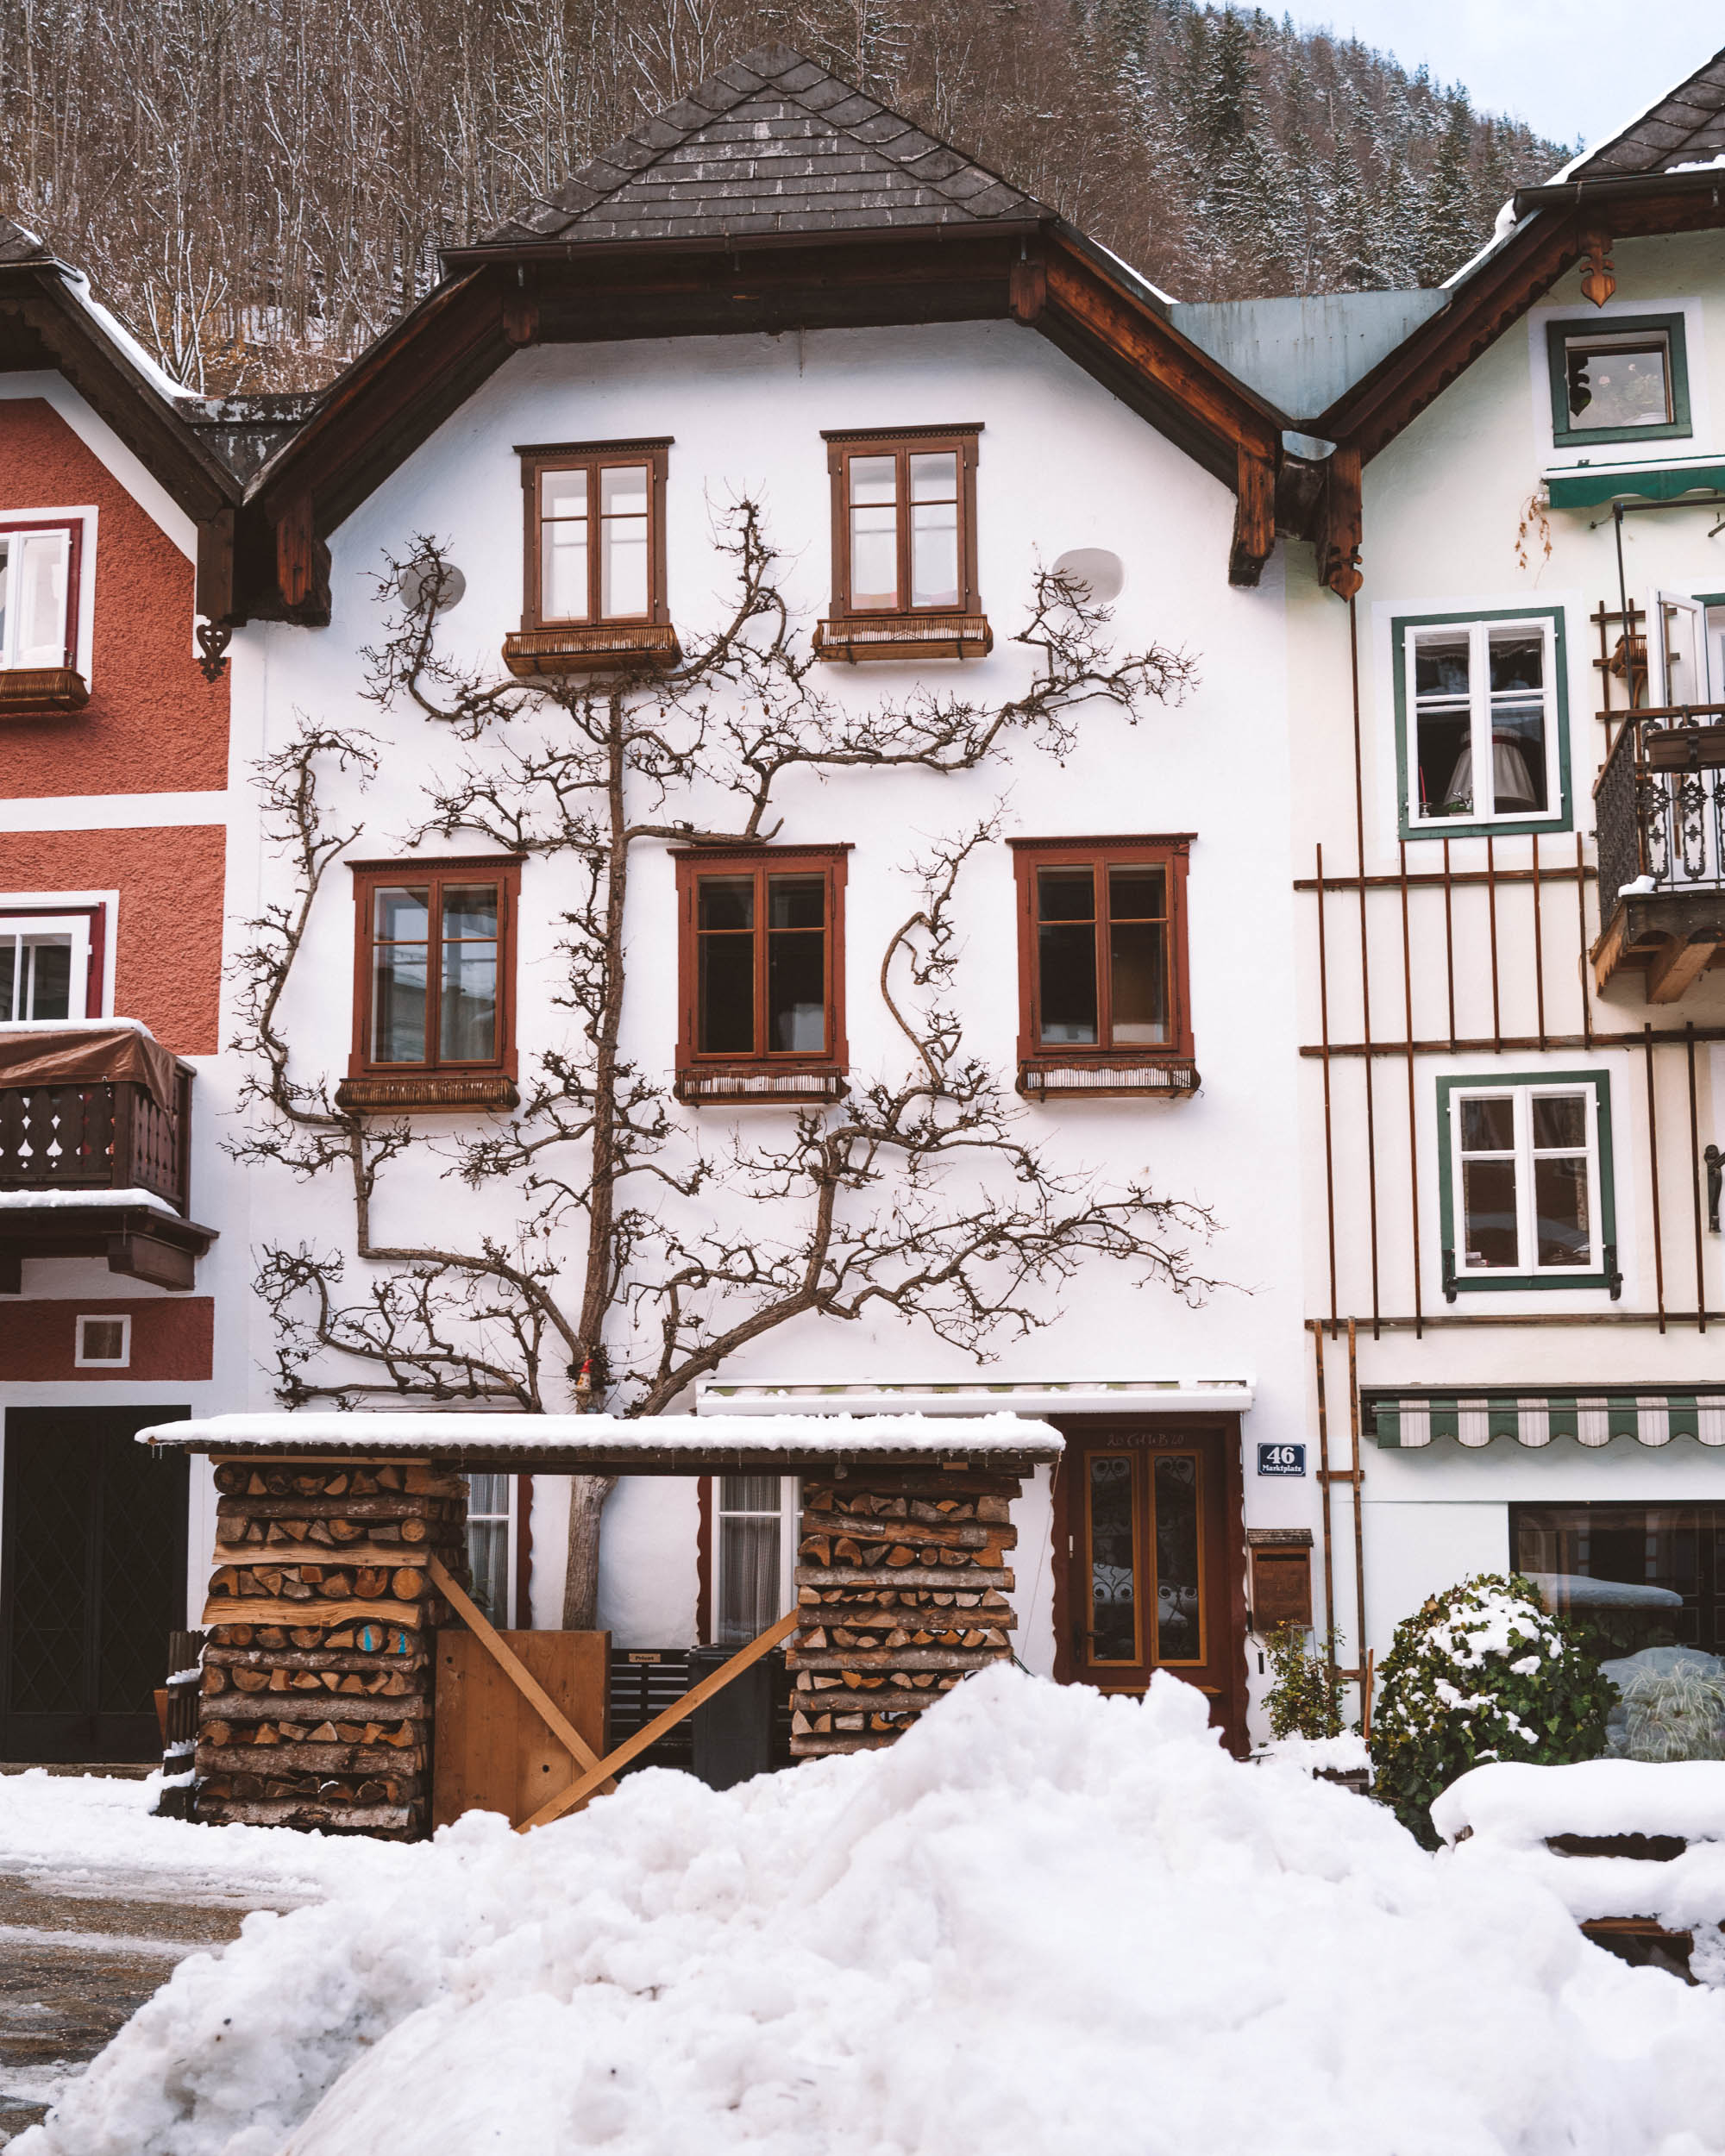 Hallstatt main square with gingerbread houses in Austria